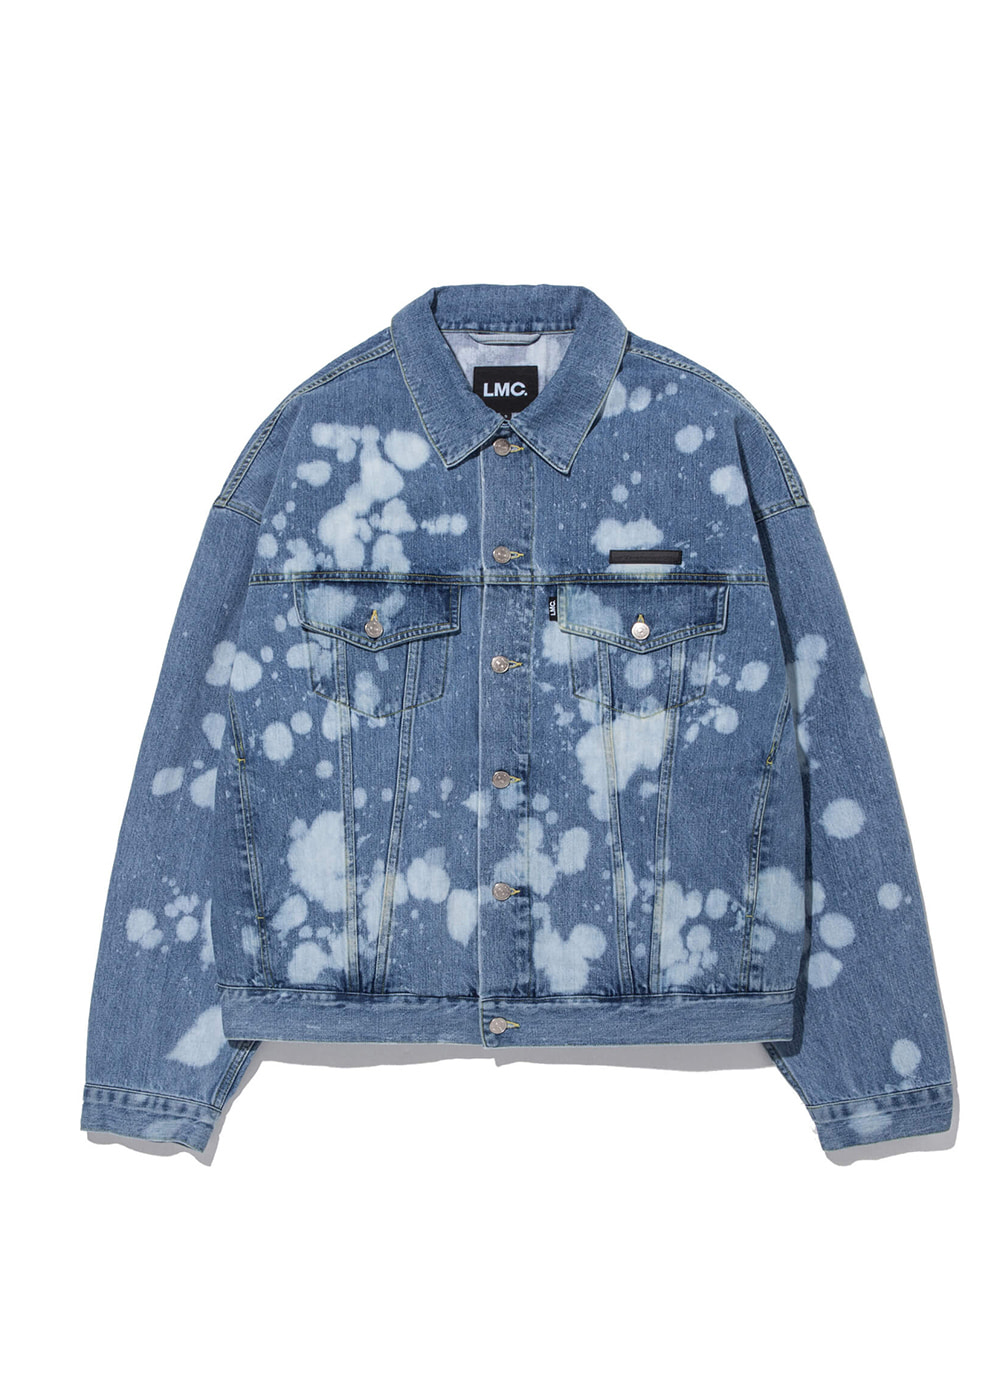 LMC RP DENIM BLEACHED TRUCKER JACKET blue